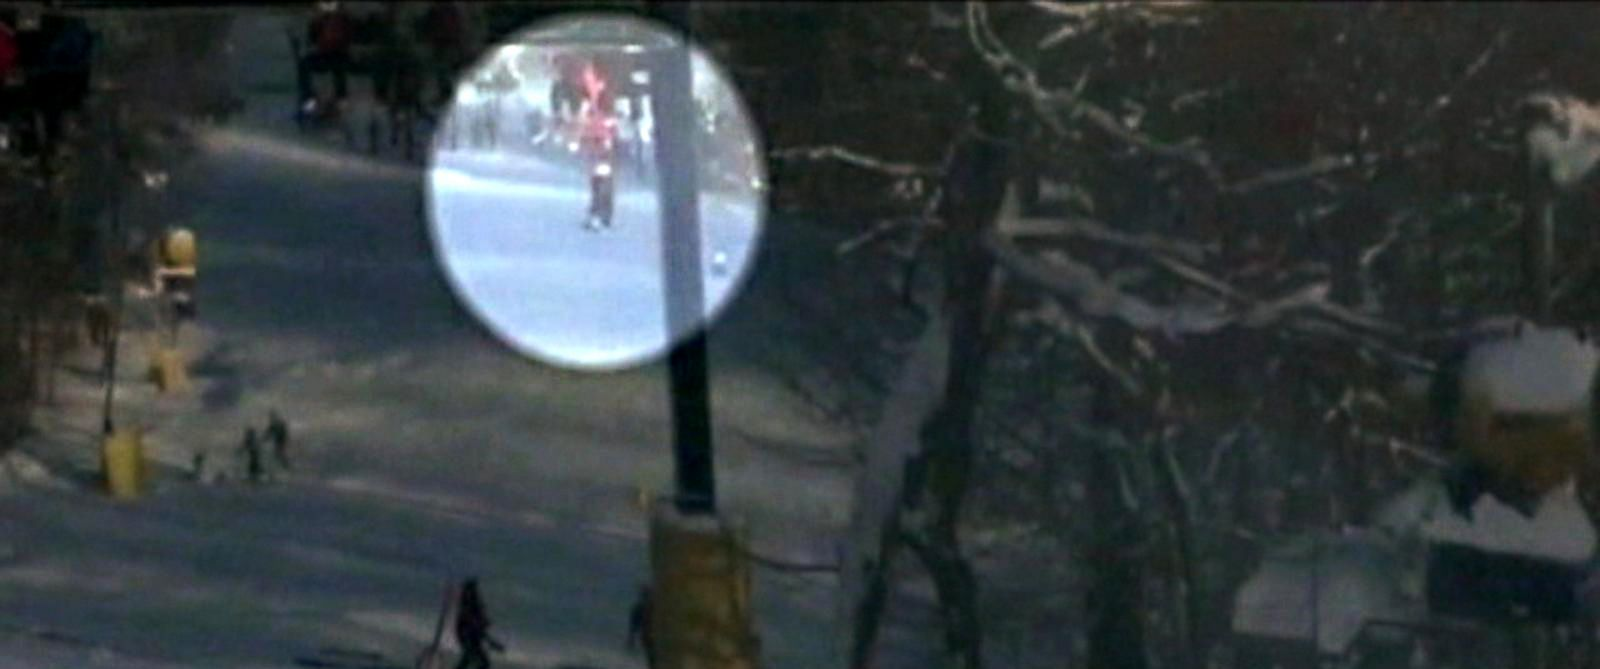 PHOTO: Video captured Jan. 10, 2015 at Liberty Mountain resort in Fairfield, Pennsylvania shows a boy dangling from a ski lift.